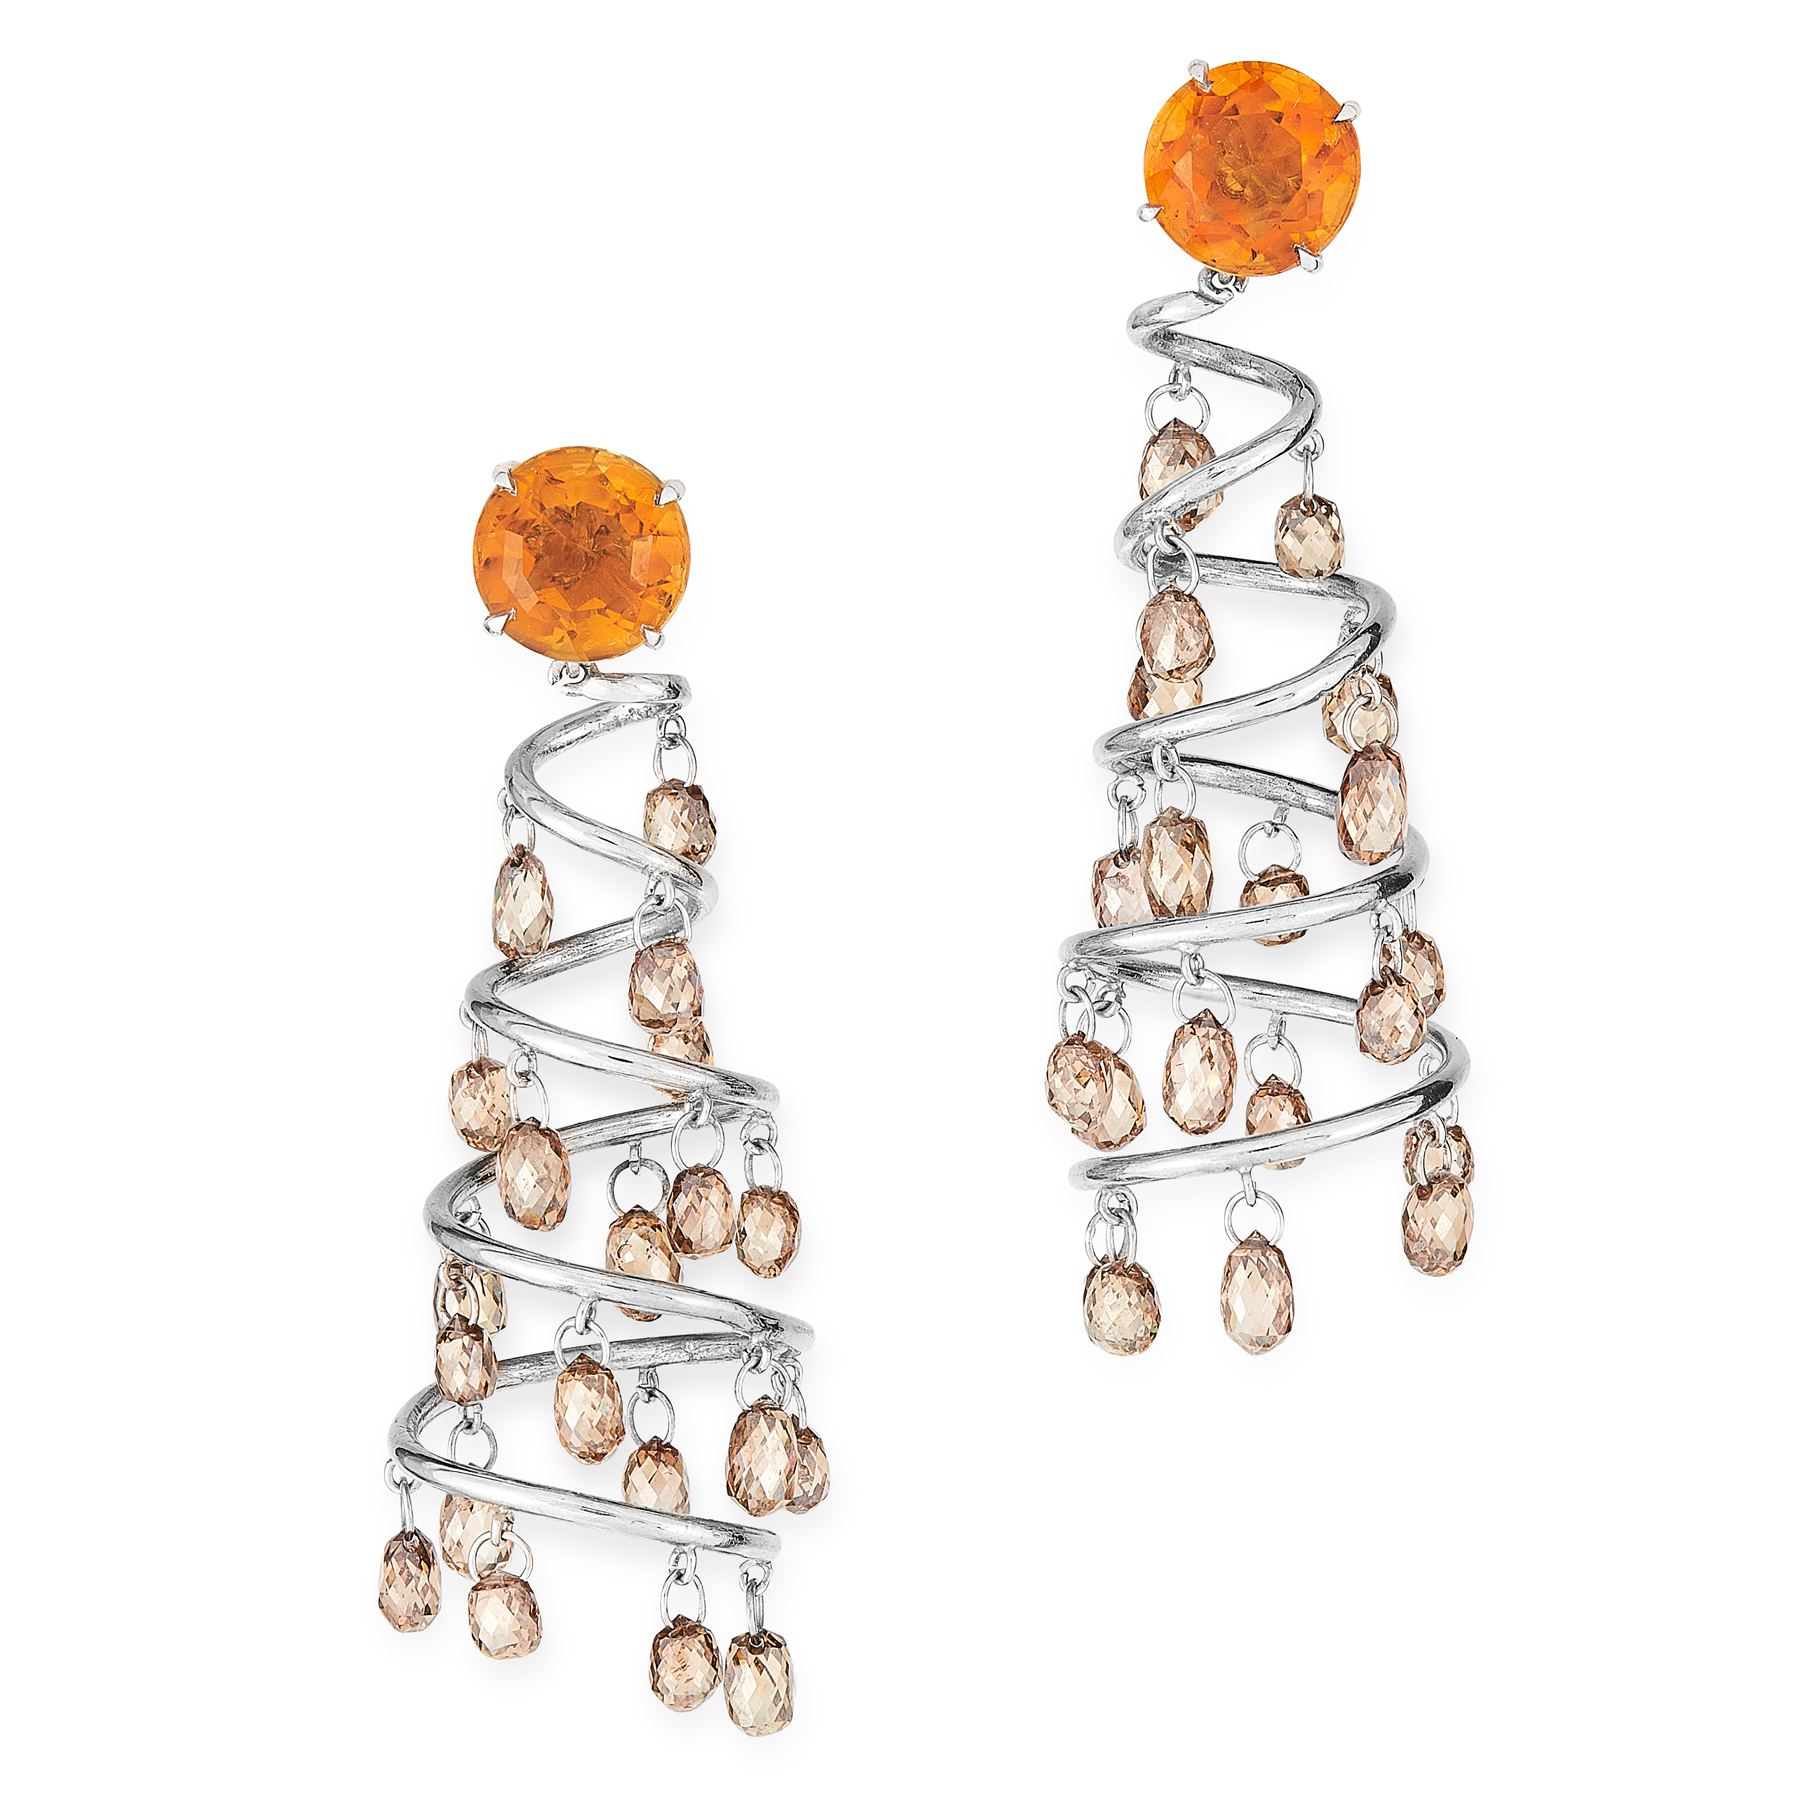 A PAIR OF DIAMOND AND CITRINE CHANDELIER EARRINGS in 18ct white gold, each designed as a tapering